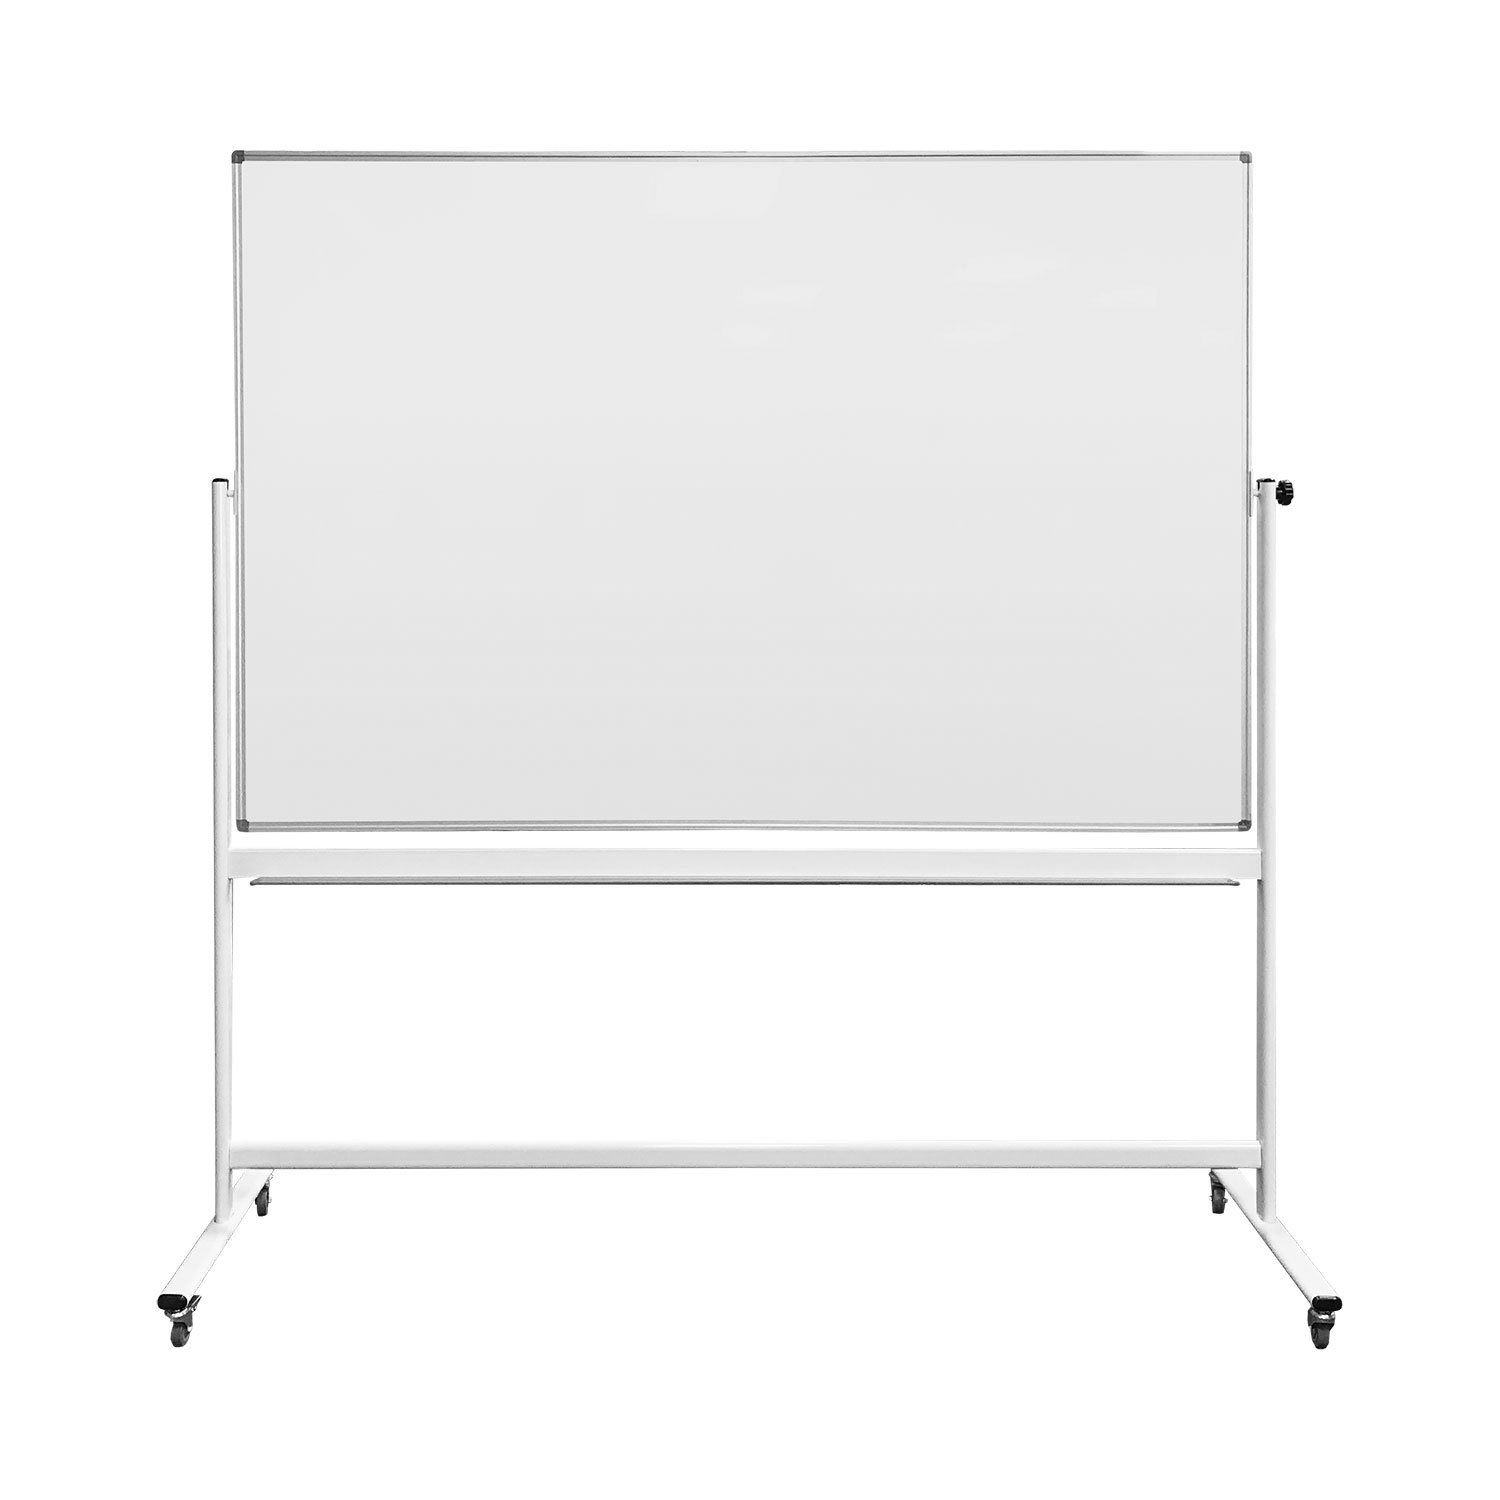 Thornton's Office Supplies Magnetic Reversible Mobile Dry Erase Whiteboard Easel, 70'' L x 48'' W, White/Silver